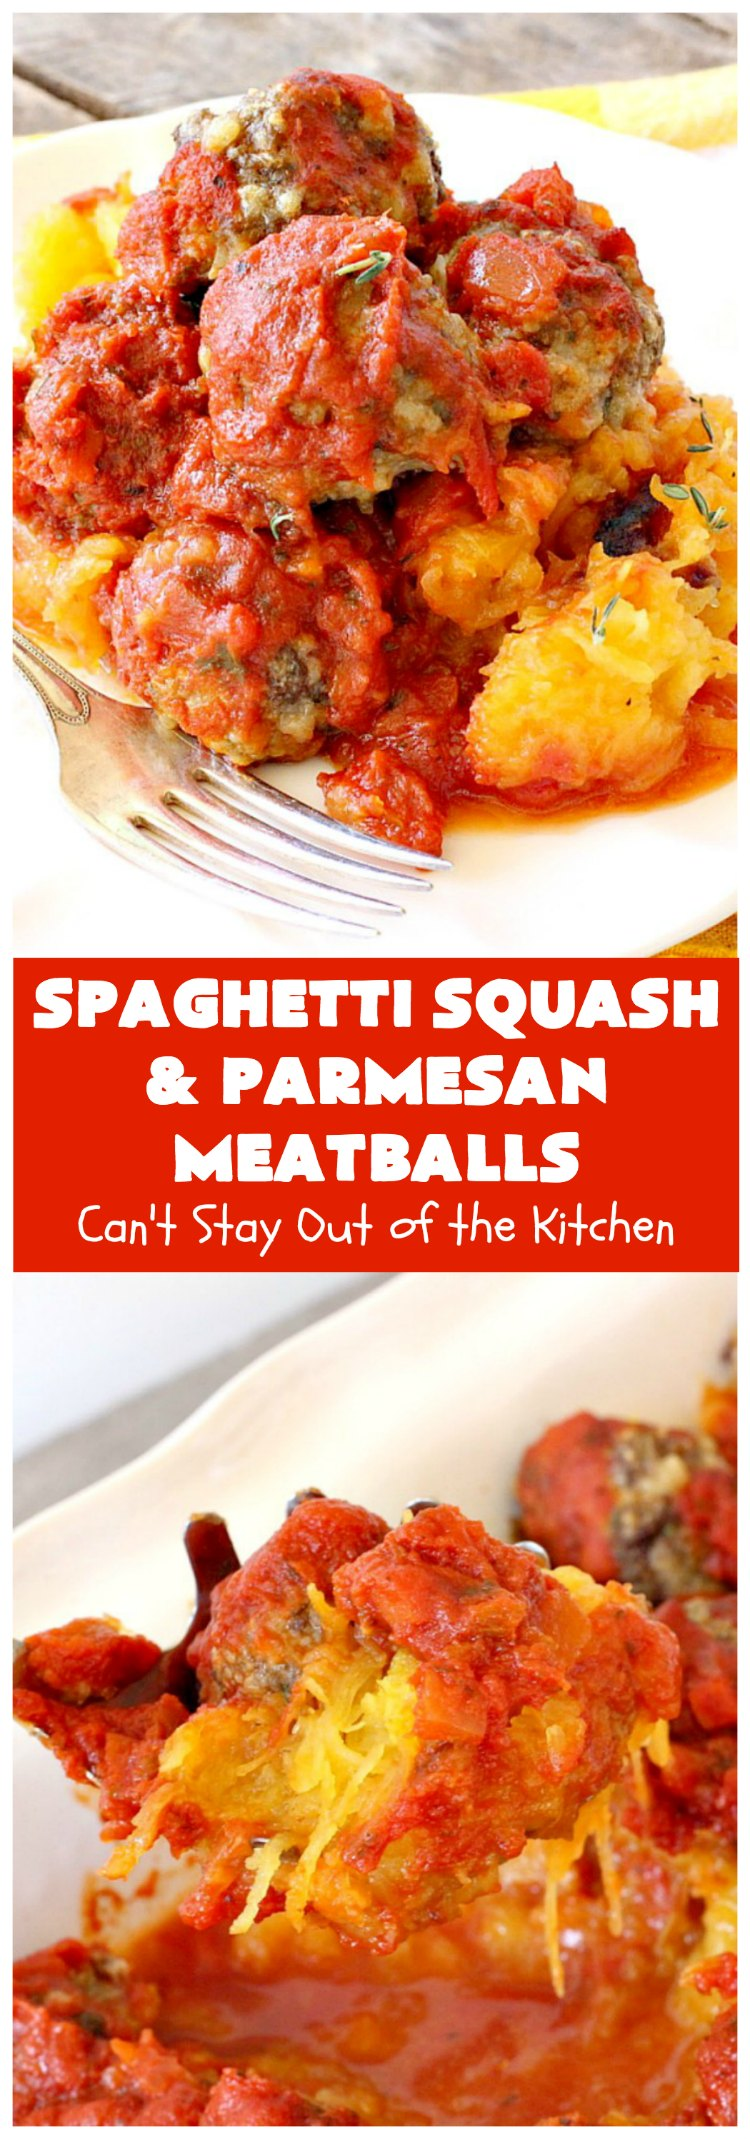 Spaghetti Squash and Parmesan Meatballs | Can't Stay Out of the Kitchen